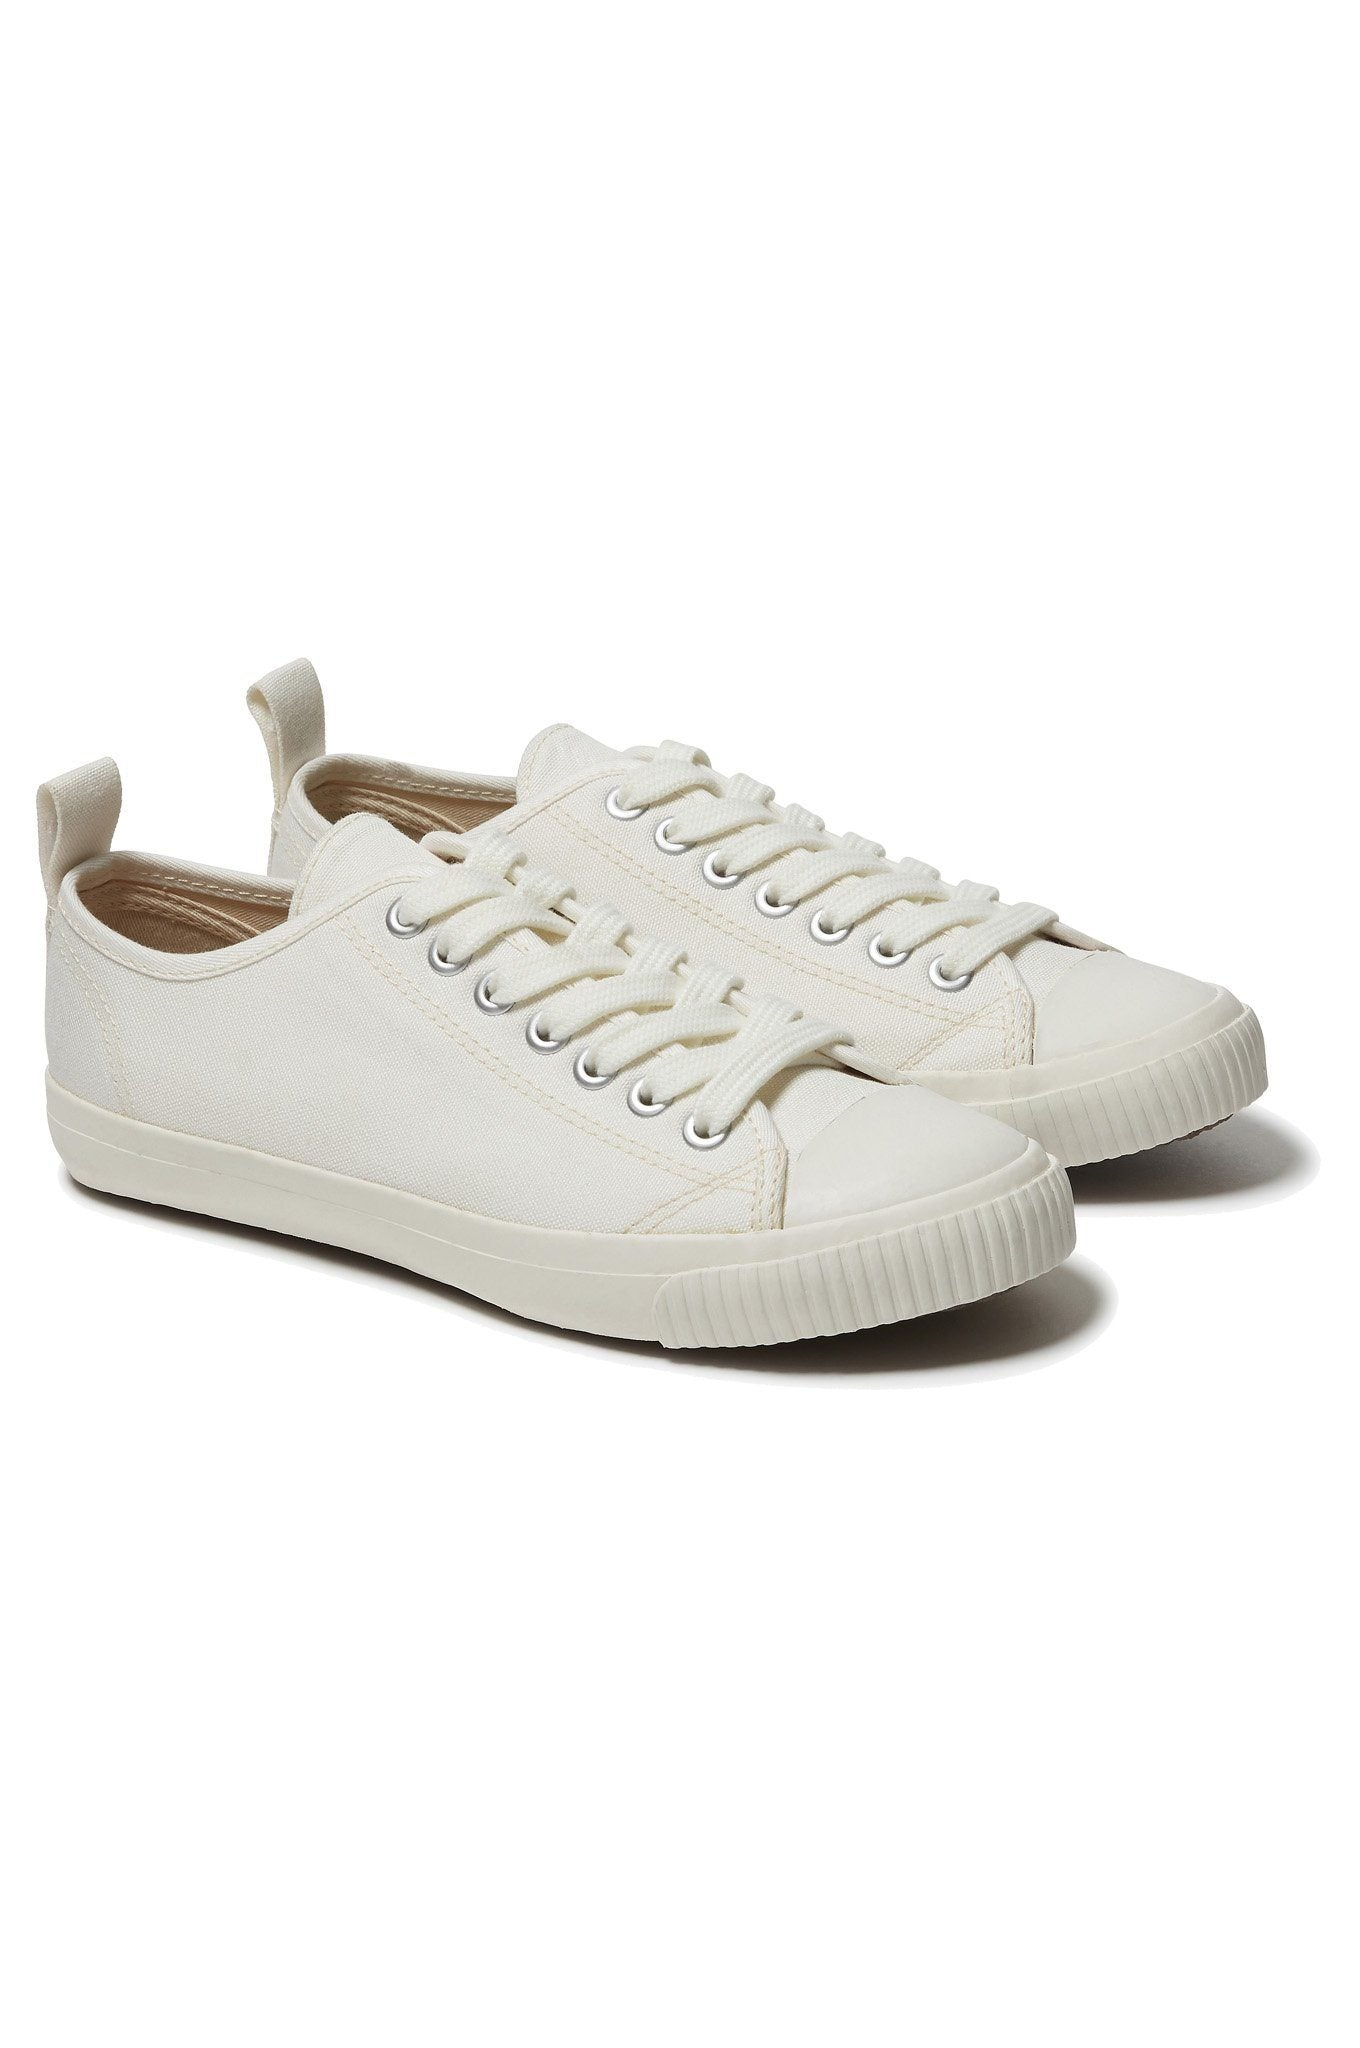 ECO SNEAKO - CLASSIC Womens White - Komodo Fashion